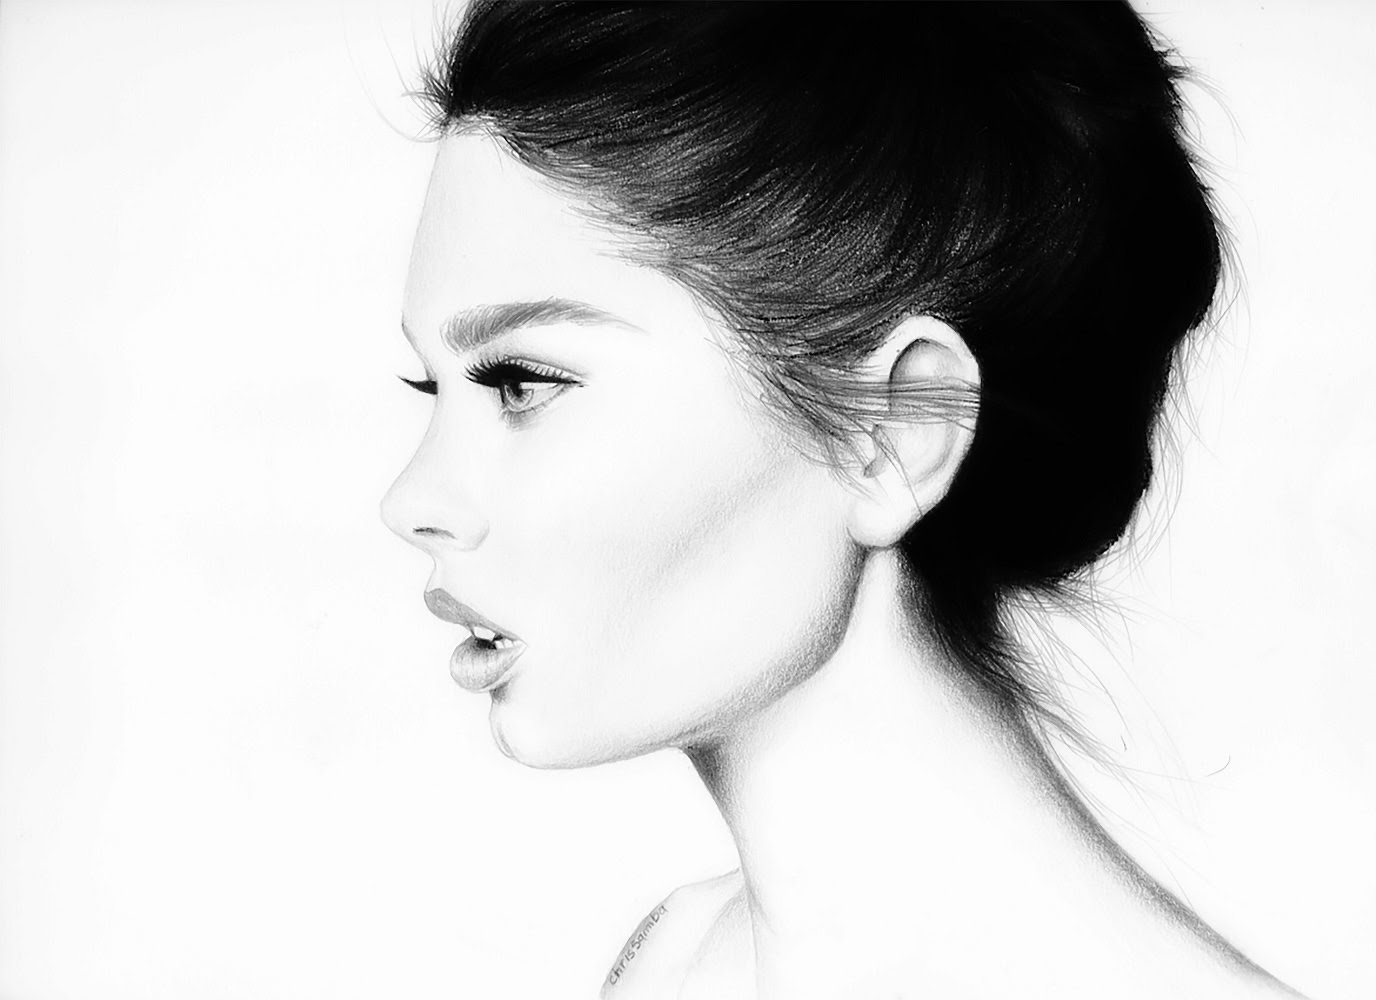 Drawn profile female face Realistic (side (side Drawing Face